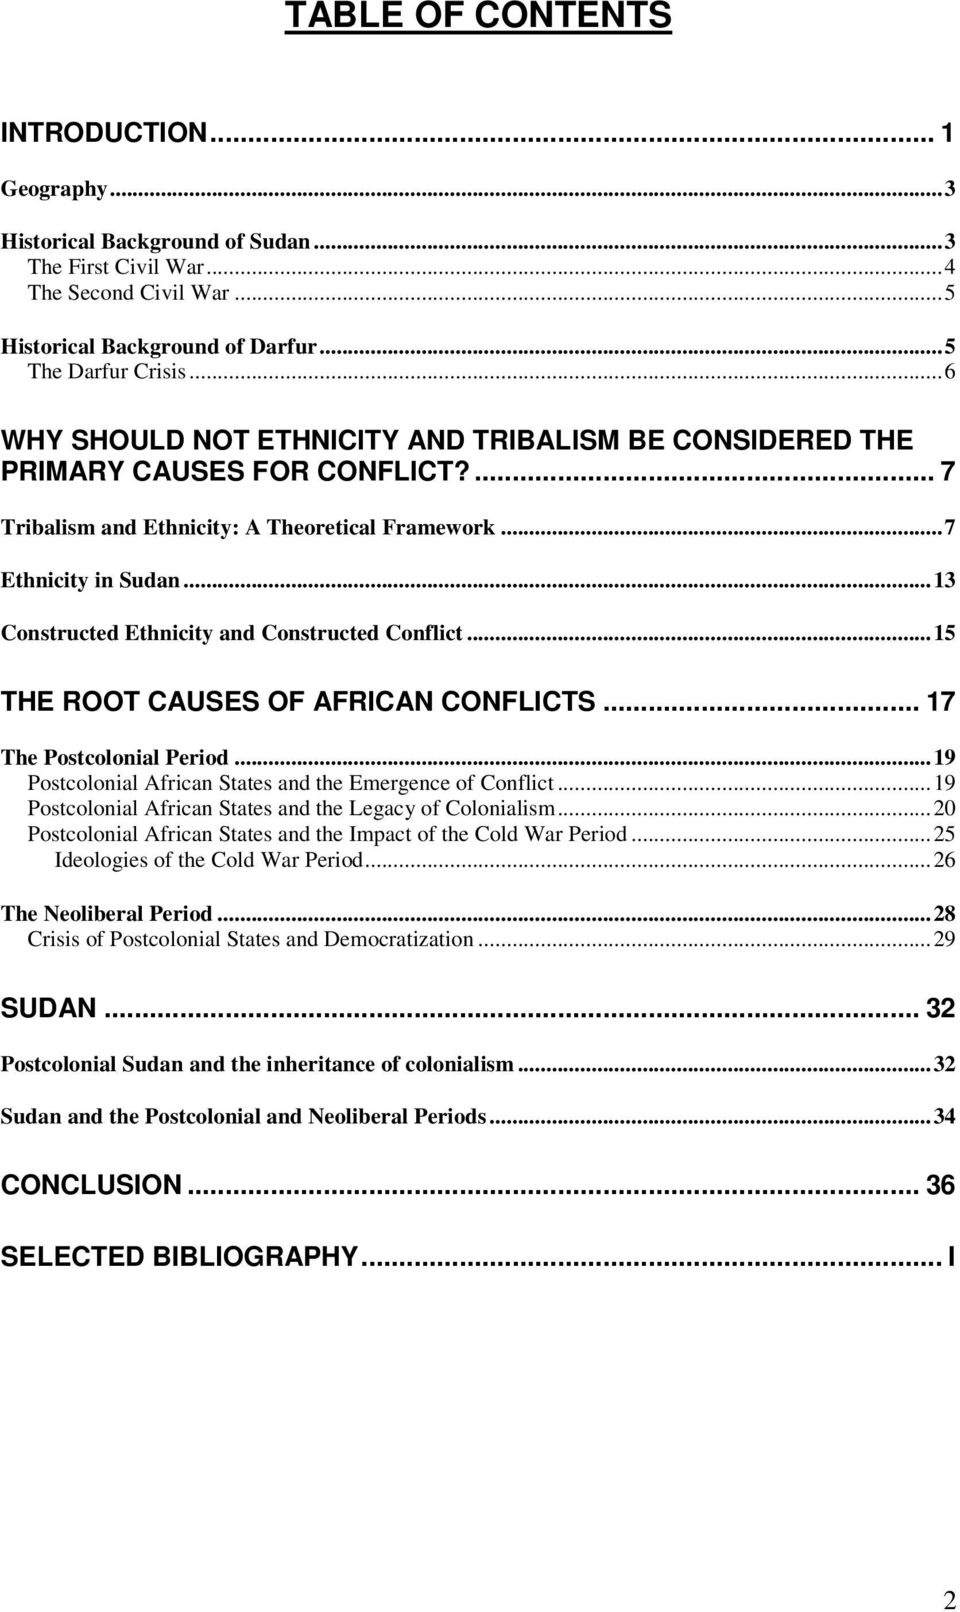 ..13 Constructed Ethnicity and Constructed Conflict...15 THE ROOT CAUSES OF AFRICAN CONFLICTS... 17 The Postcolonial Period...19 Postcolonial African States and the Emergence of Conflict.